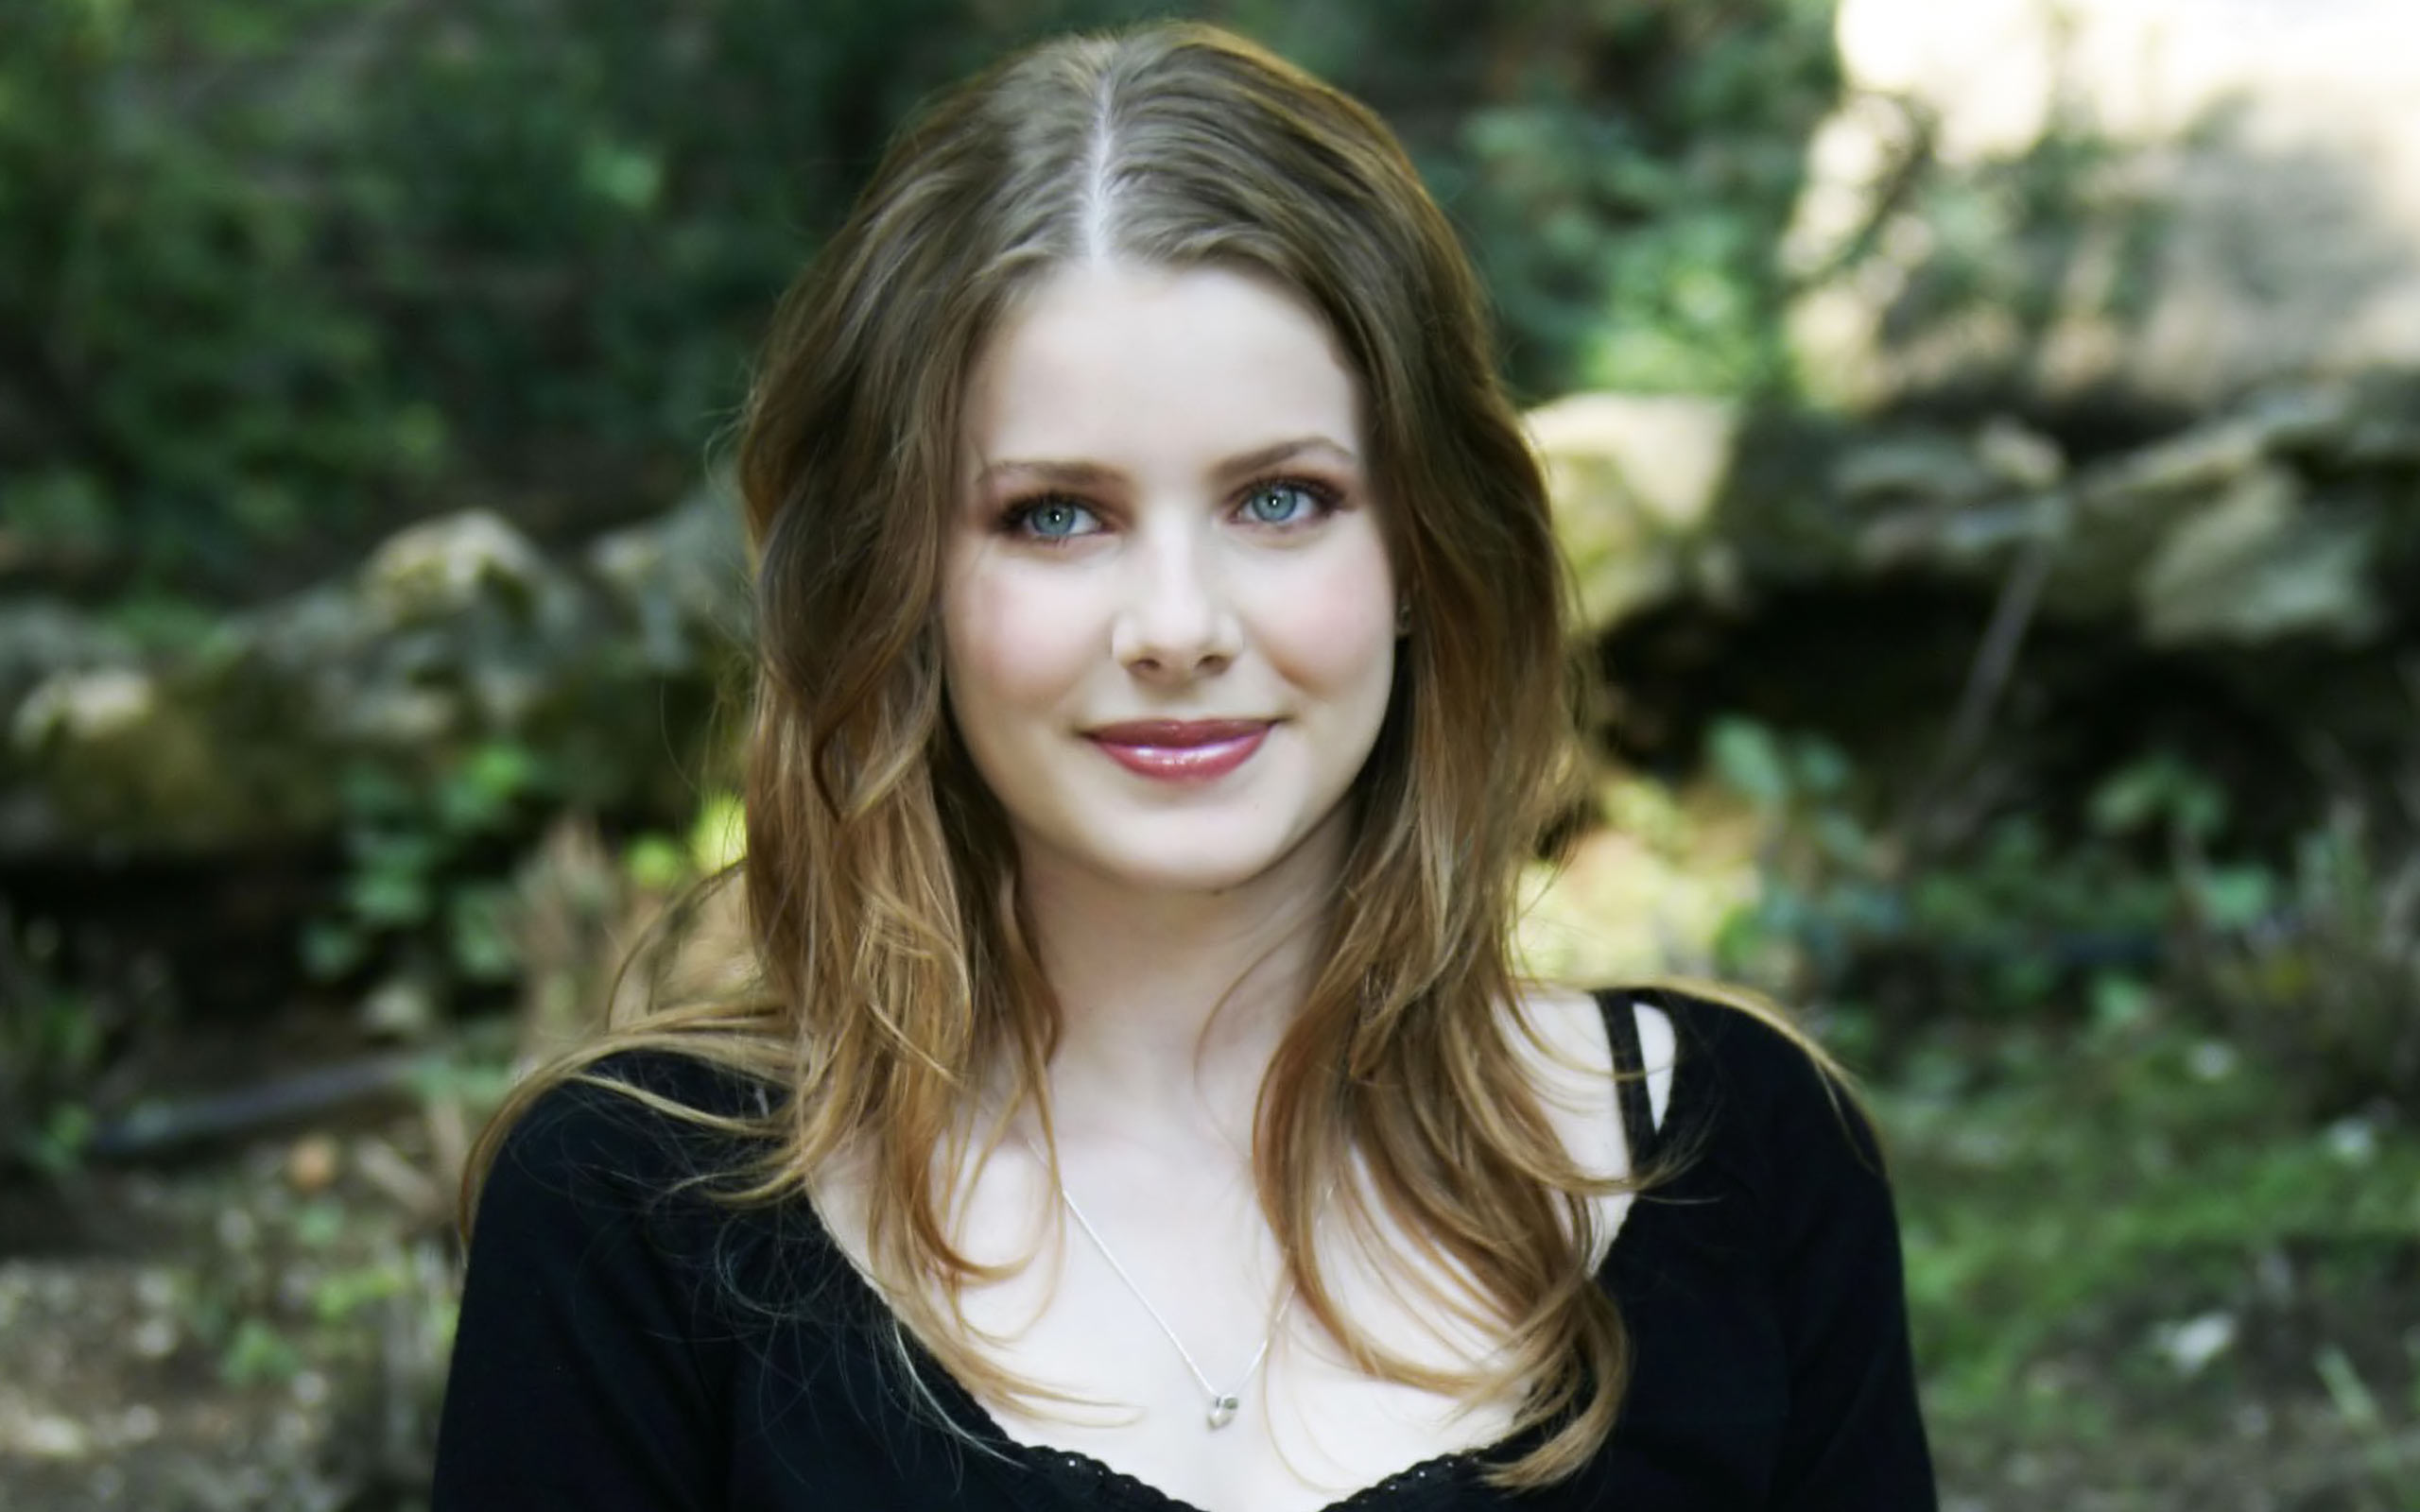 Rachel Hurd-Wood HD Wallpapers